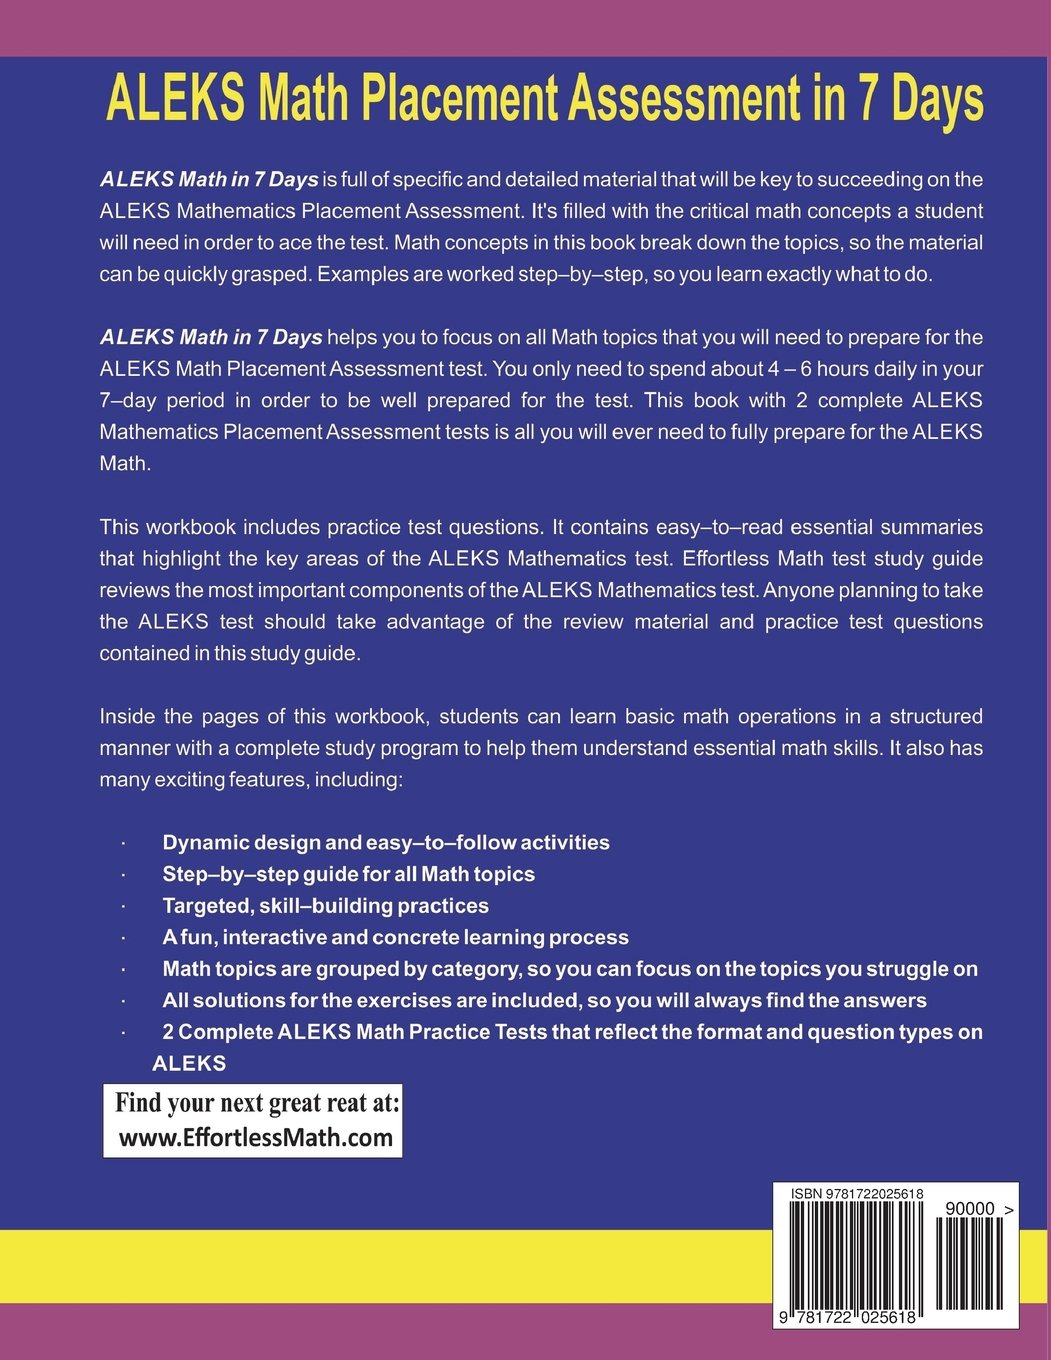 ALEKS Math Placement Assessment in 7 Days: Step-By-Step Guide to Preparing  for the ALEKS Math Test Quickly: Reza Nazari, Ava Ross: 9781722025618: ...